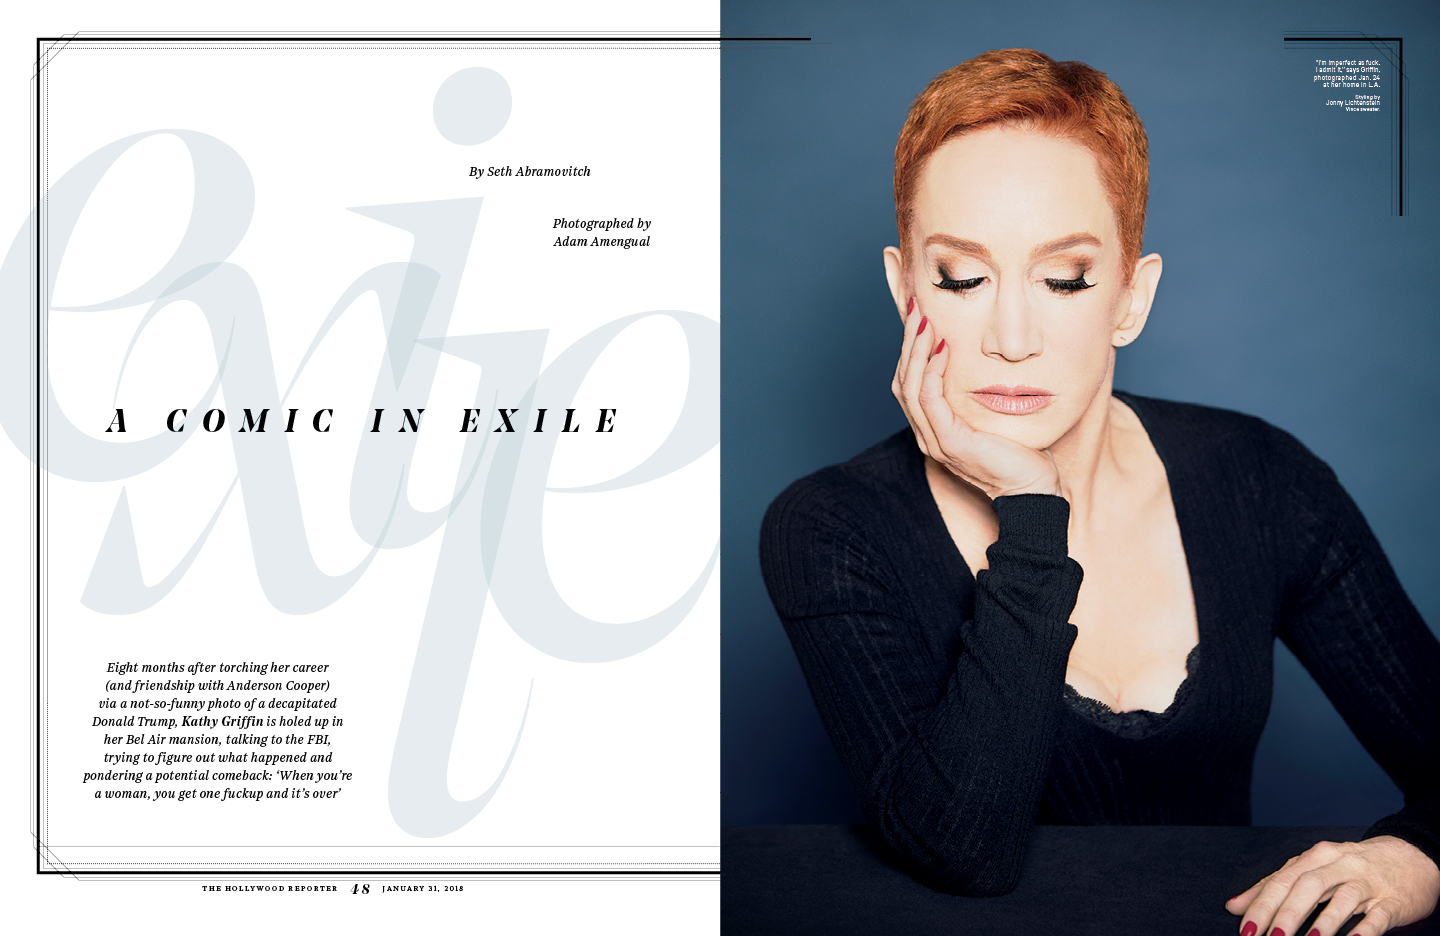 A Comedian in Exile / The Hollywood Reporter / 1.31.18 / kelsey stefanson / art direction + graphic design / yeskelsey.com